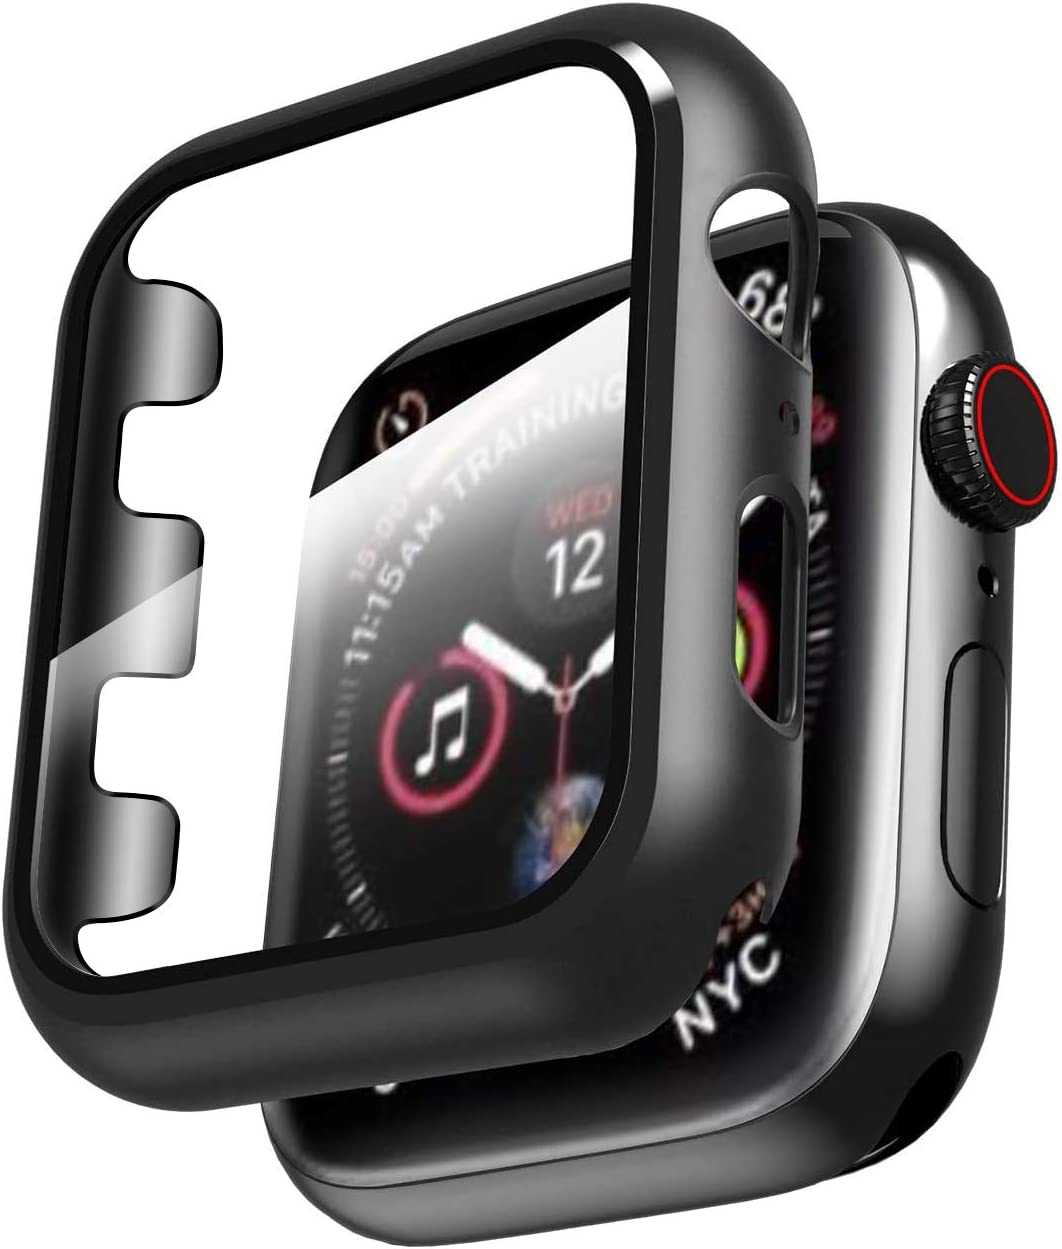 Smiling Case for Apple Watch Series 3 & Series 2 38mm with Built in Screen Protector- All Around Hard PC Case with Tempered Glass Screen Protector Overall Protective Cover for iwatch 38mm (Black,38mm)